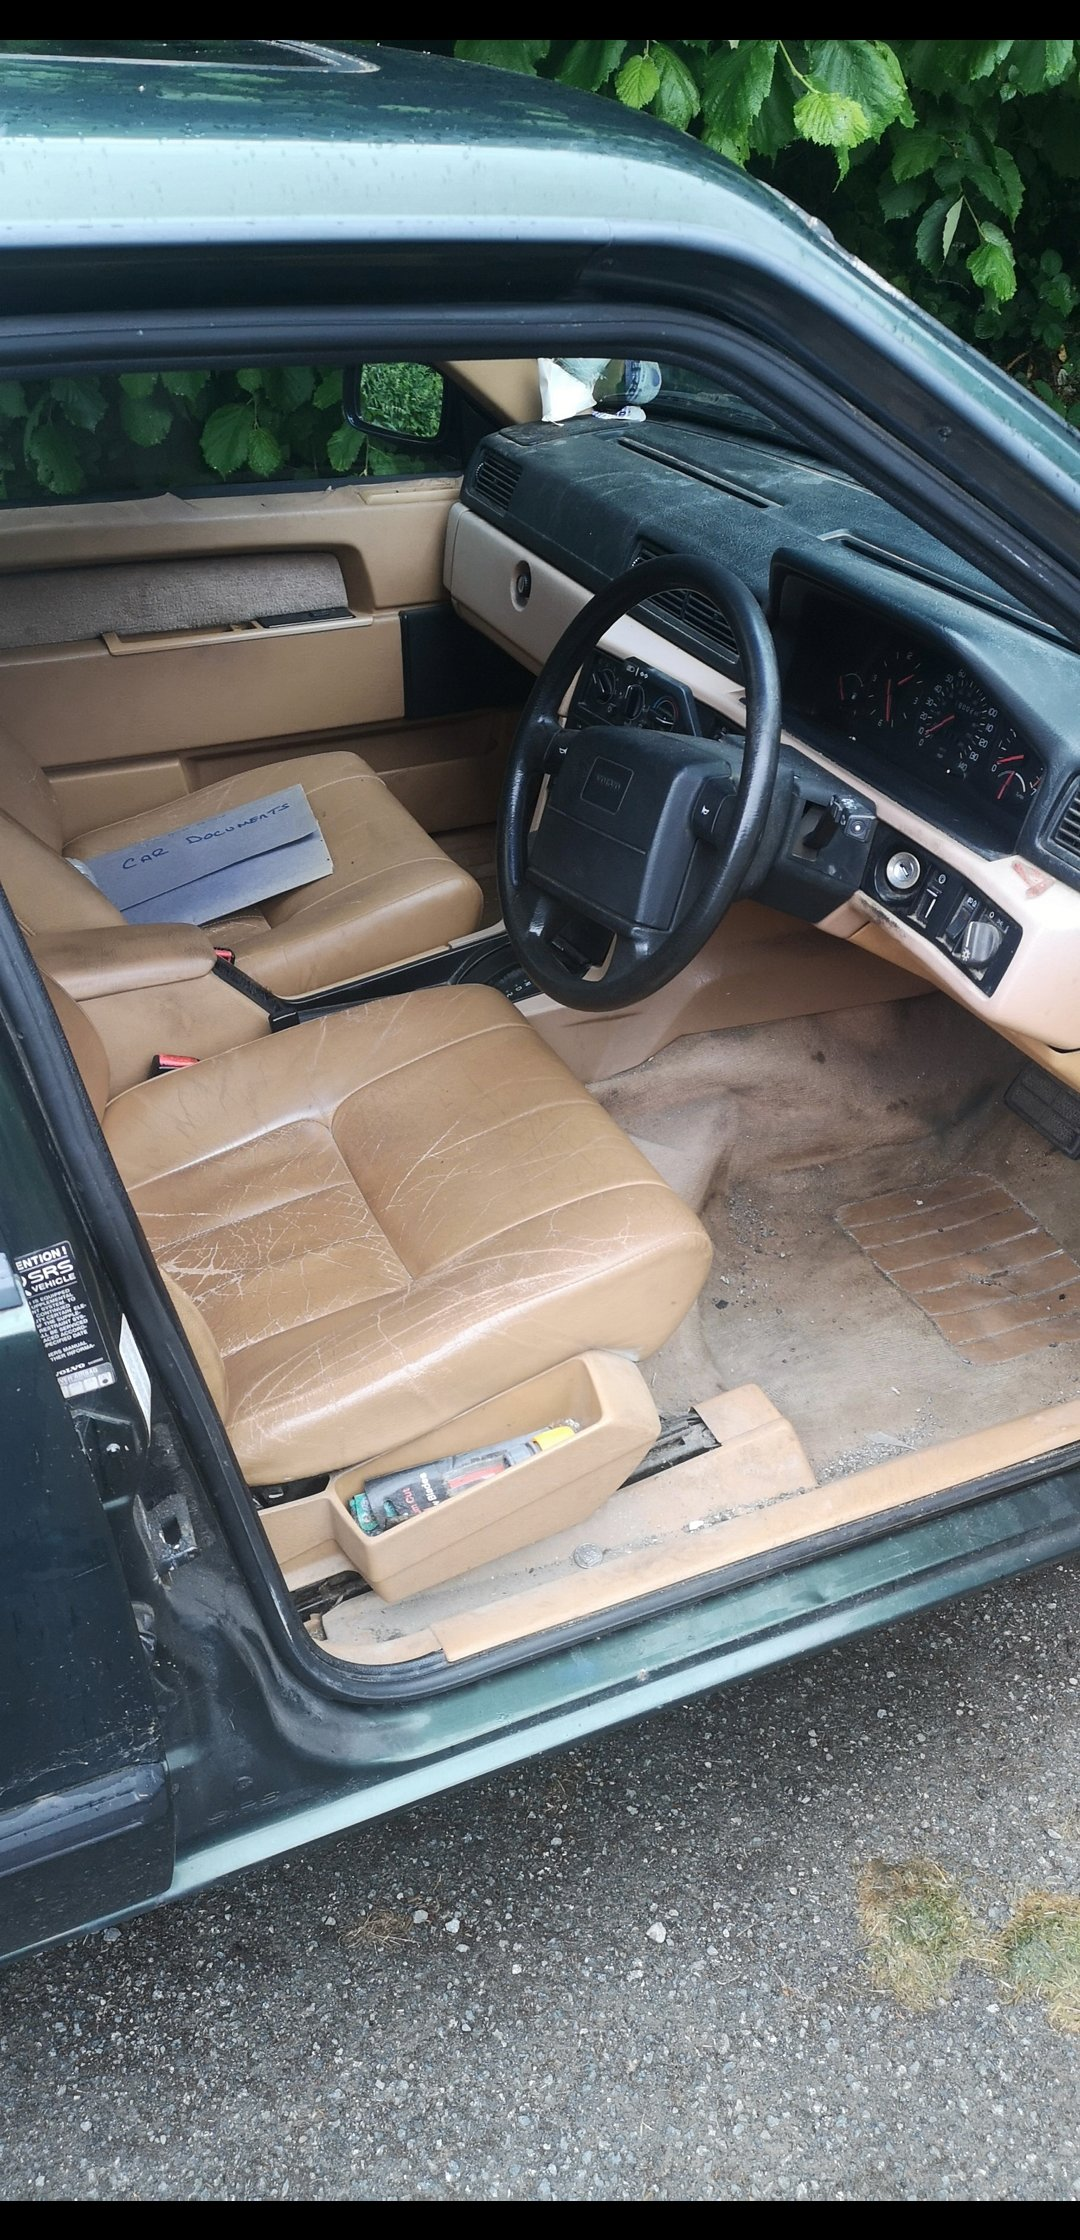 1995 volvo 940 turbo running project For Sale (picture 4 of 4)